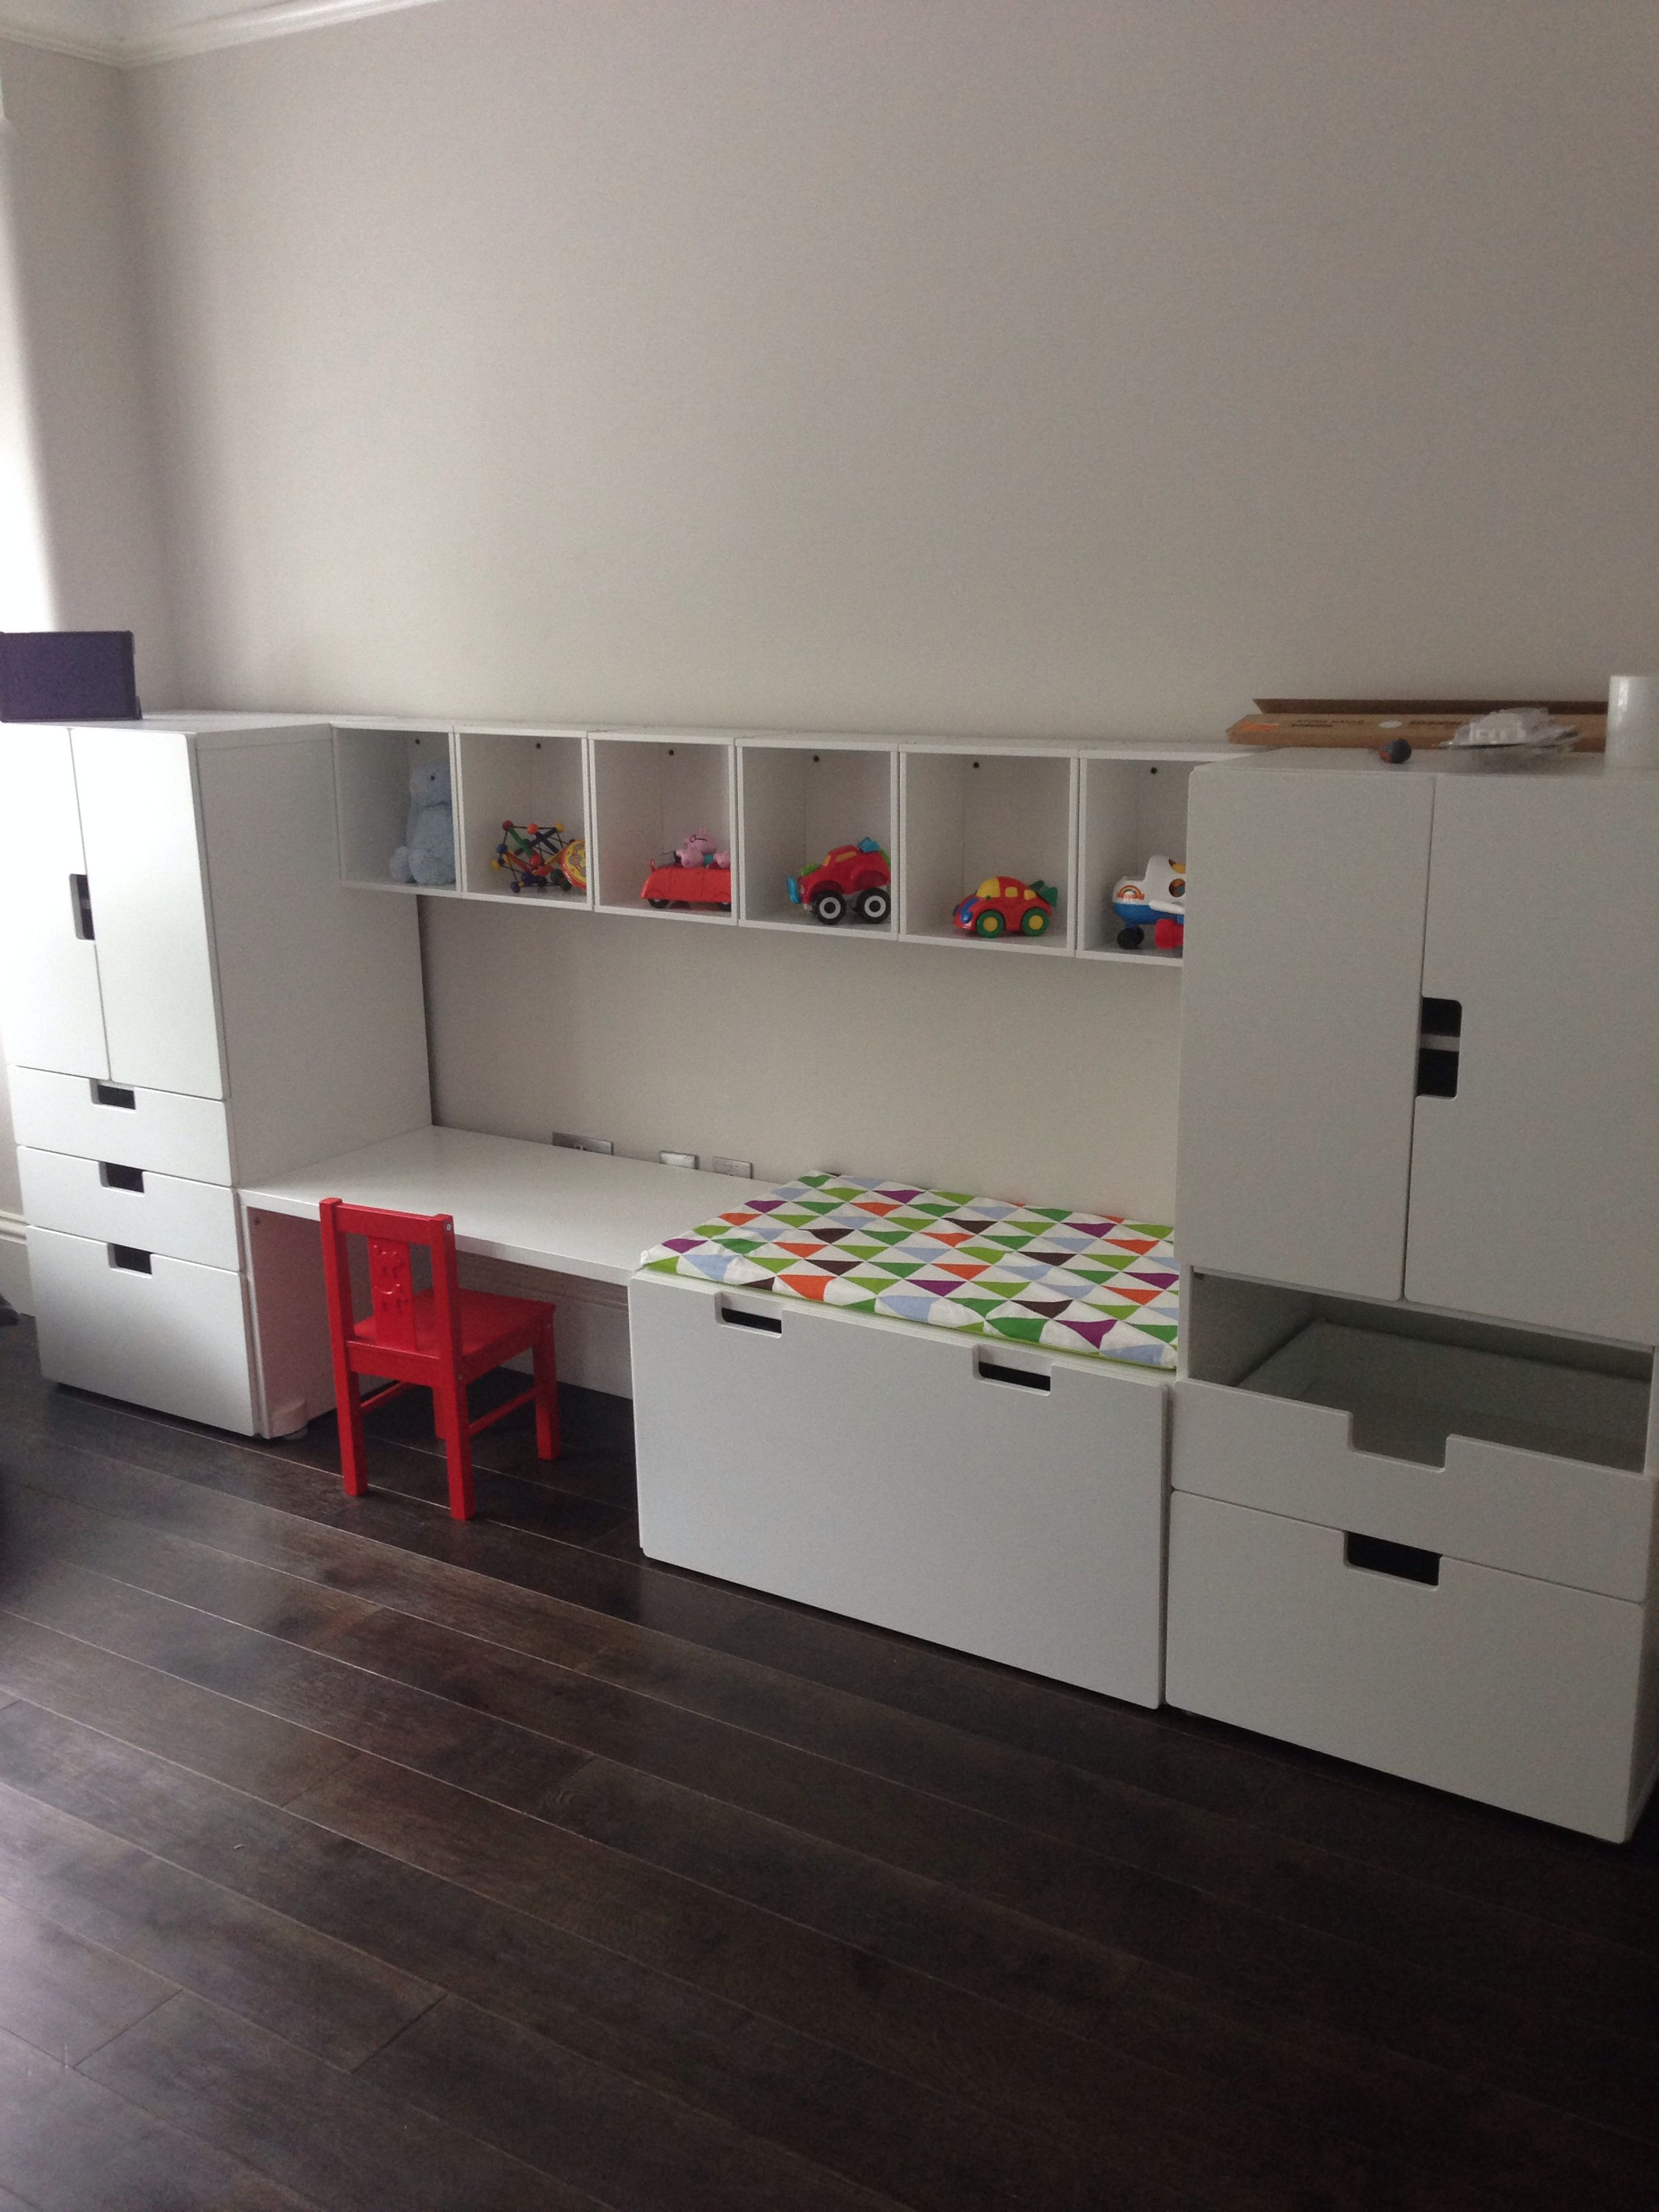 Stuva Kinderzimmer Stuva Desk And Units With Forhoja Box Shelves From Ikea Oprema